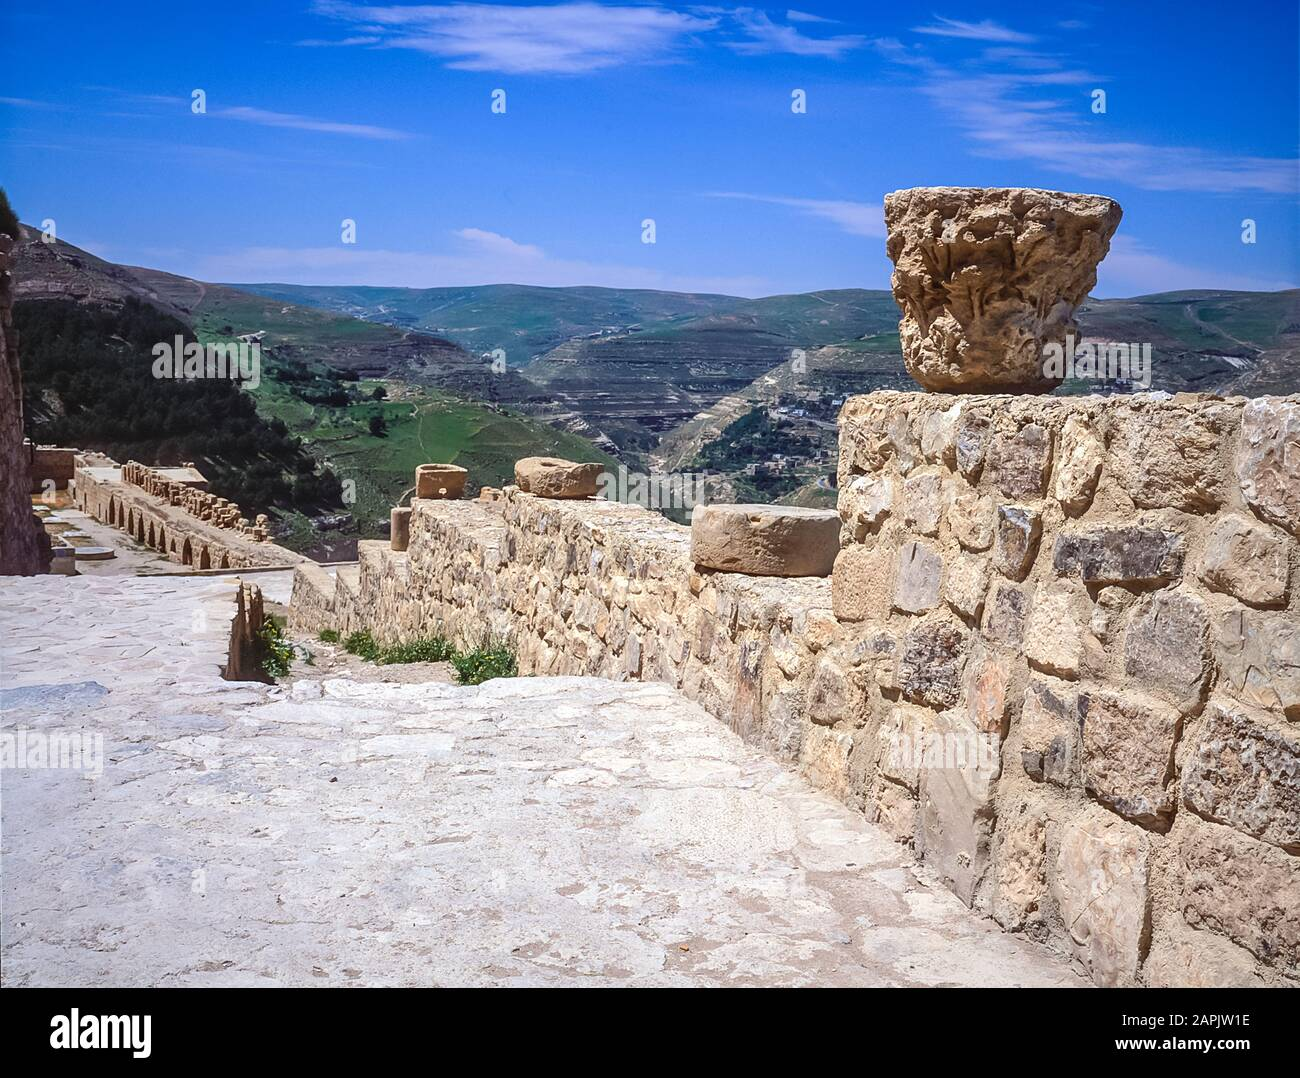 Jordan. The remains and ruins of what remains of the once mighty 12th century Qasr Al Kerak Crusader Fortress at Kerak and overlook of the adjacent countryside Stock Photo